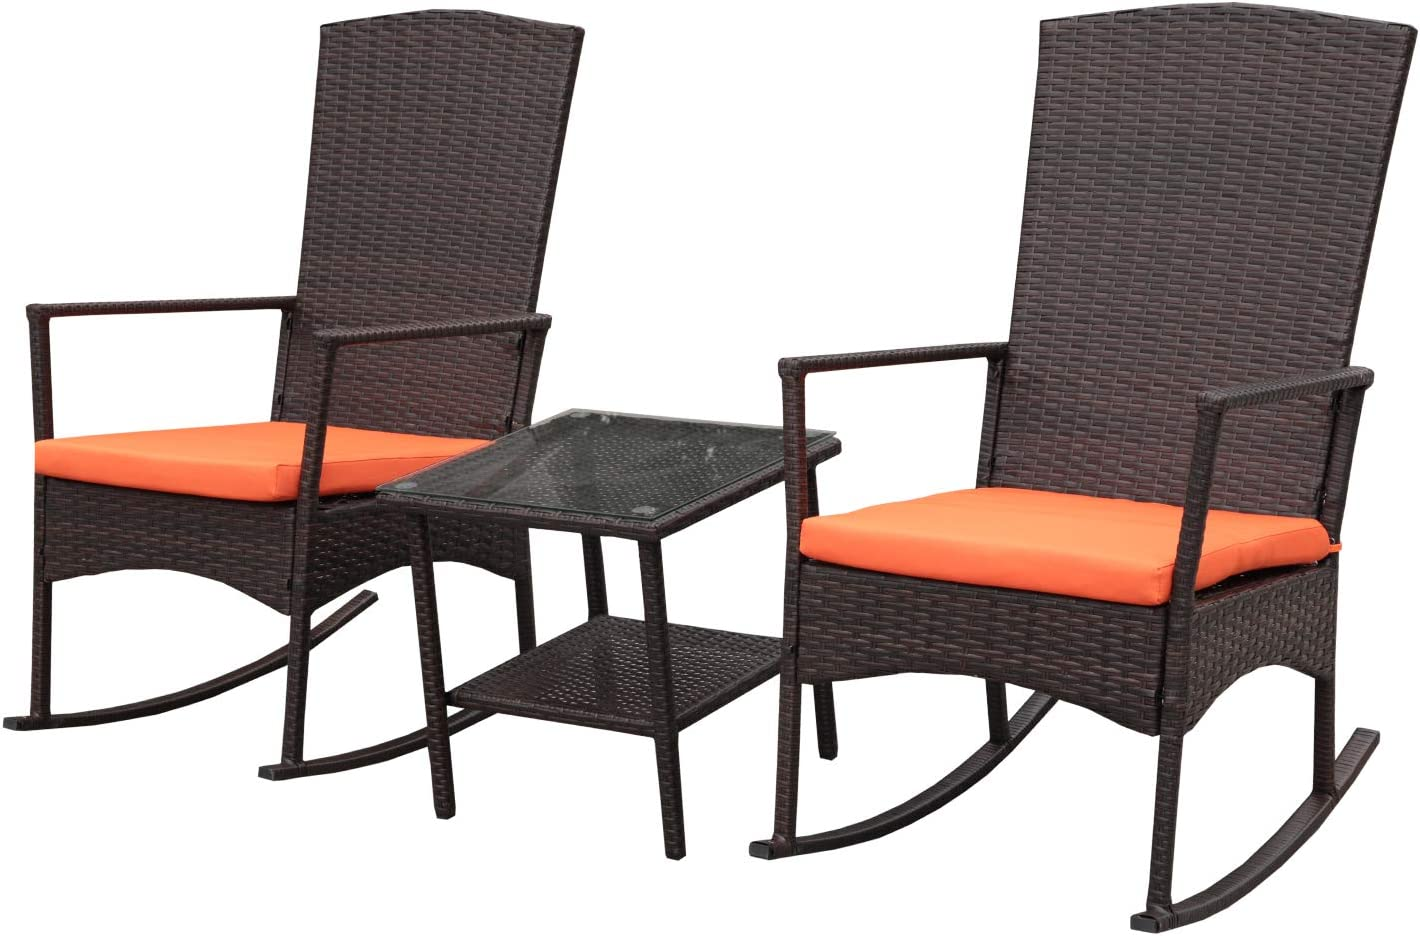 Amazon Com Rattaner Outdoor 3 Piece Wicker Rocking Chair Set Patio Bistro Set Conversation Furniture 2 Rocker Chair And Glass Coffee Side Table Mix Brown Rattan Orange Cushion Garden Outdoor